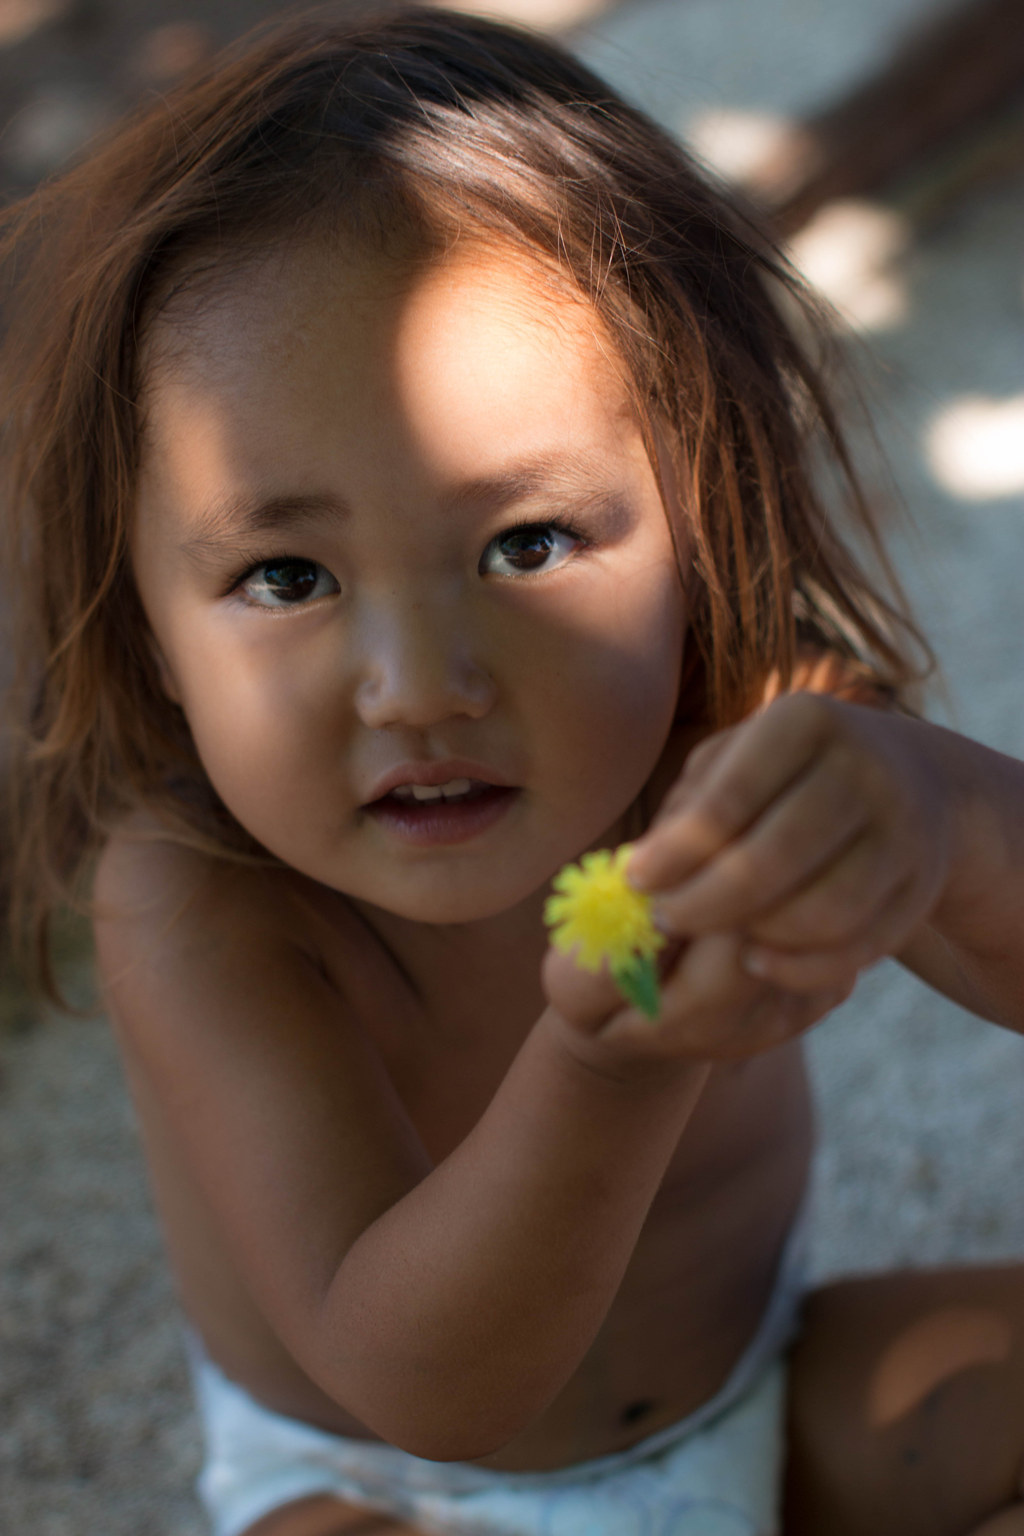 Powerful Photos Show What Life Is Like For A Homeless 3-Year-Old In Hawaii